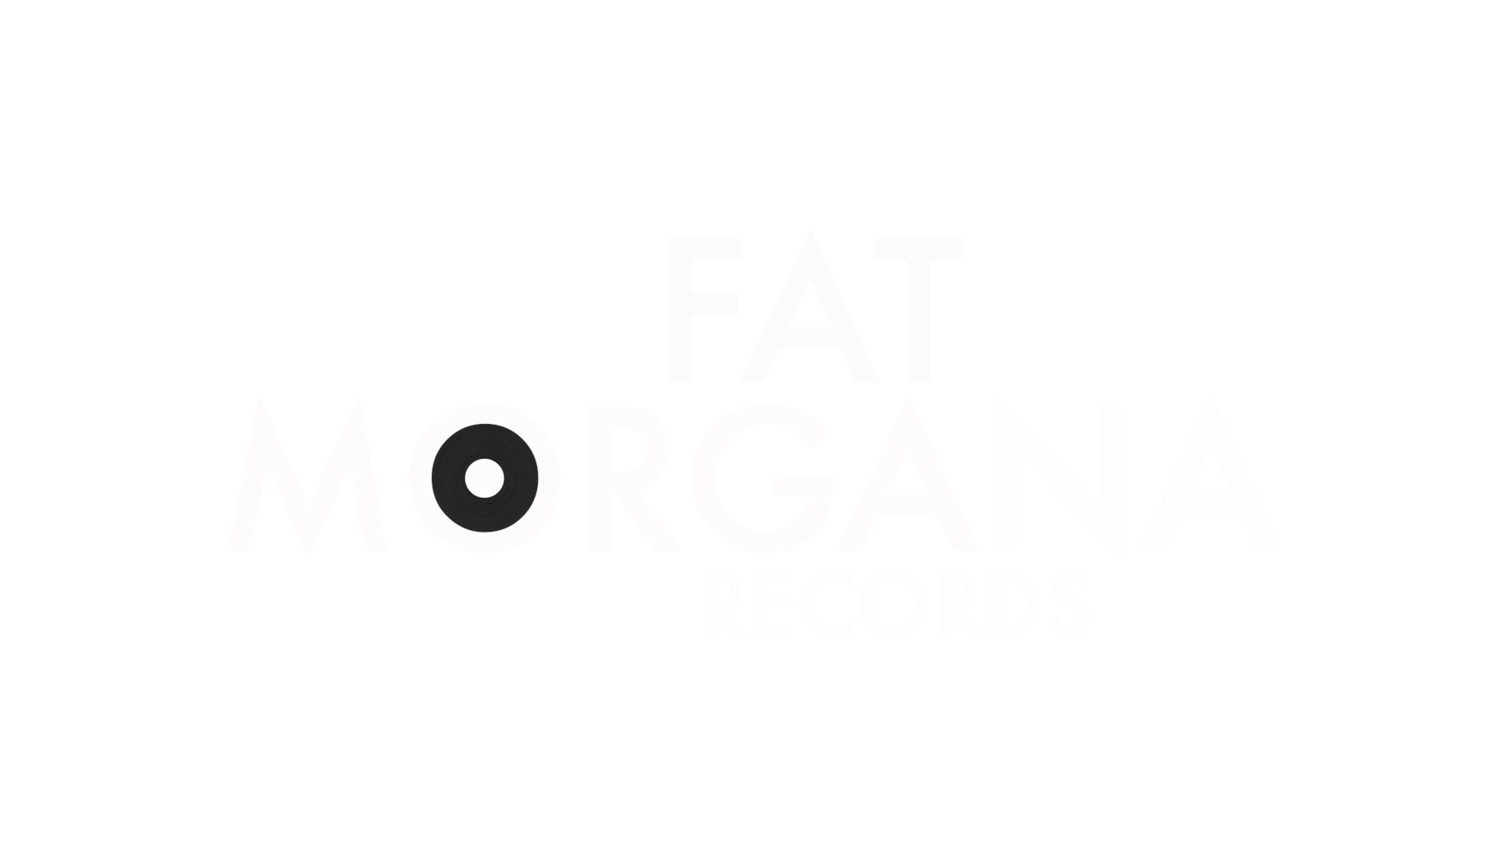 Fat Morgana Records